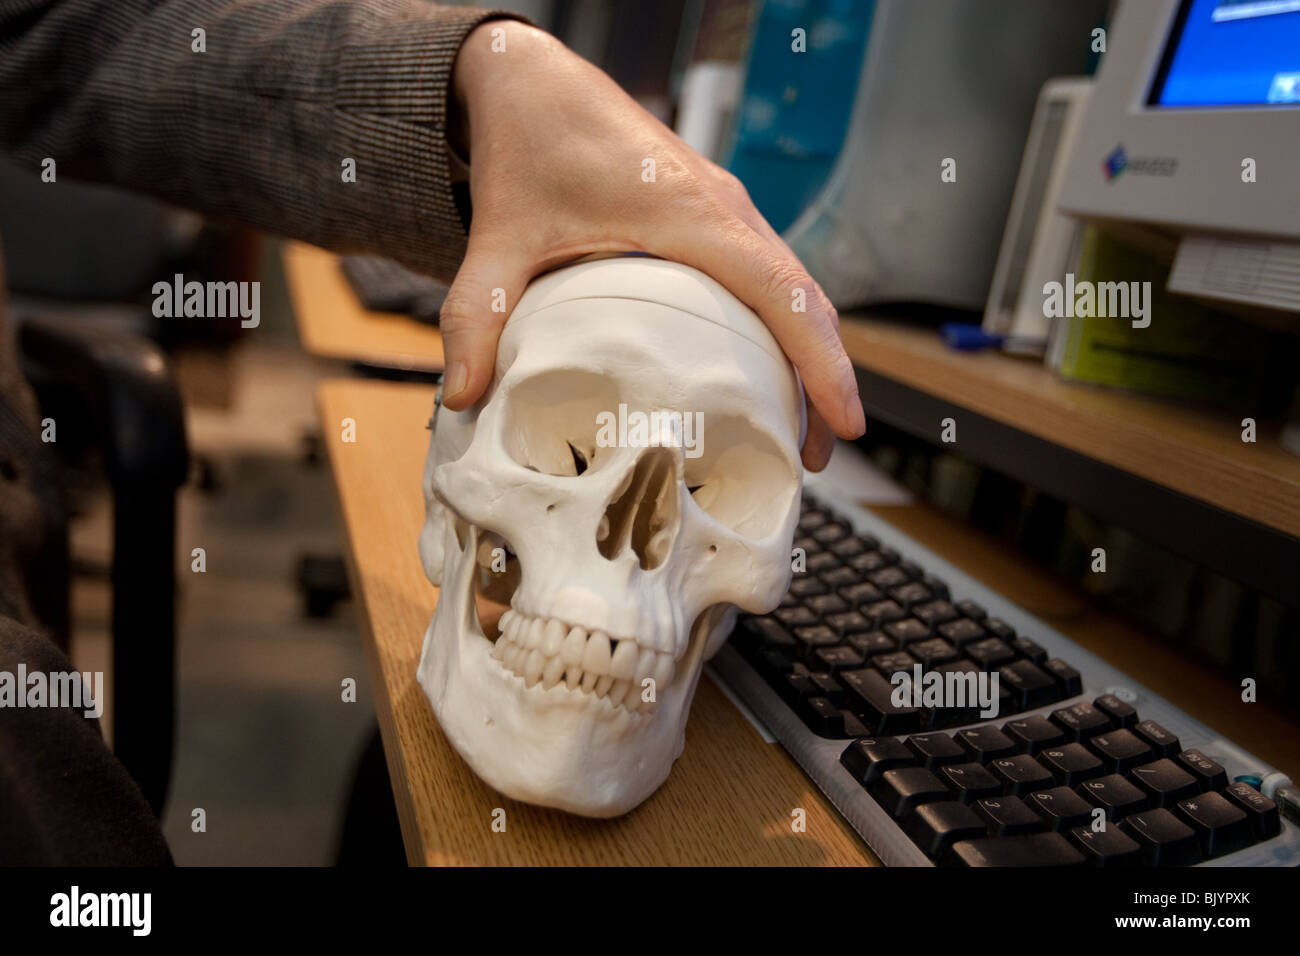 skull and computer  keyboard. - Stock Image